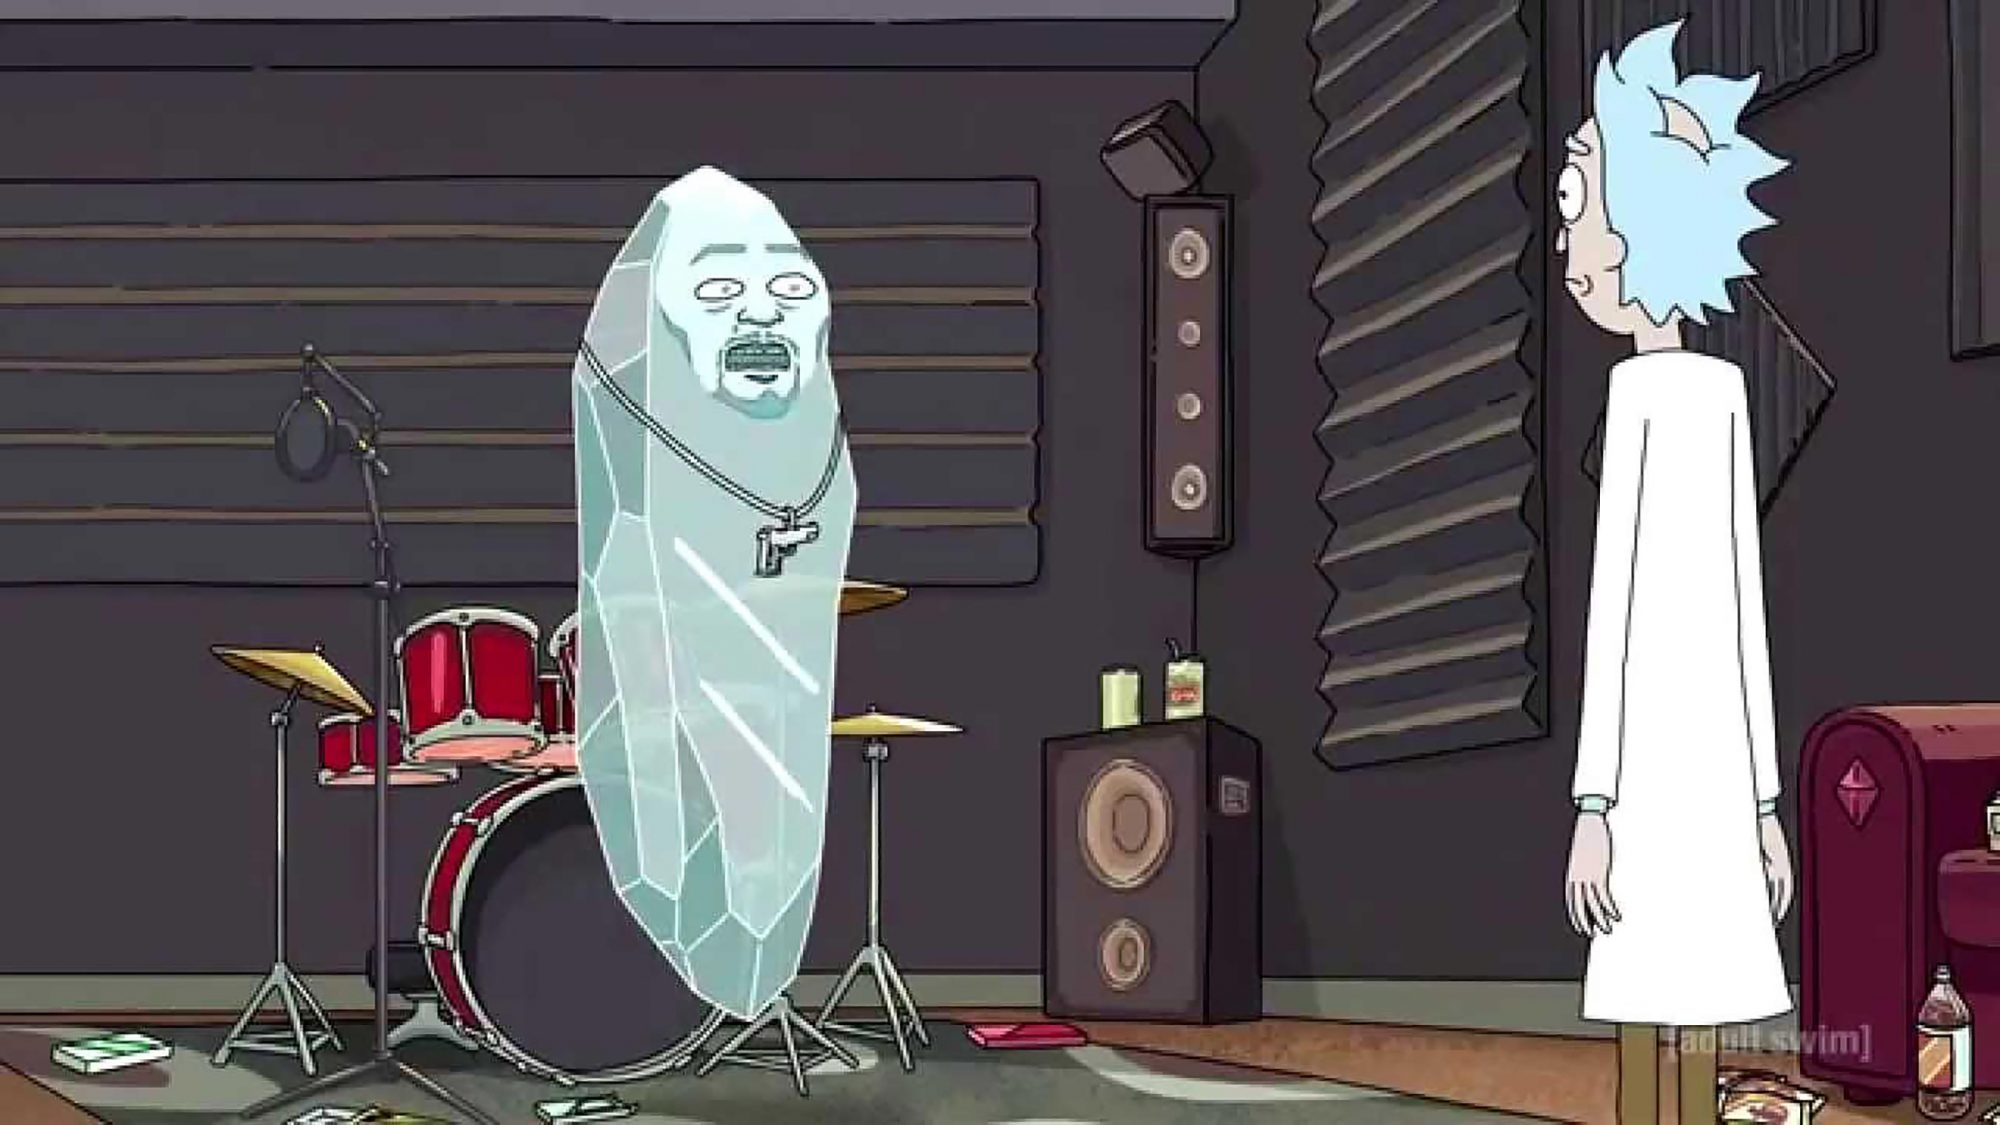 Ricky and Morty - Ice T (Season 2, Episode 5)